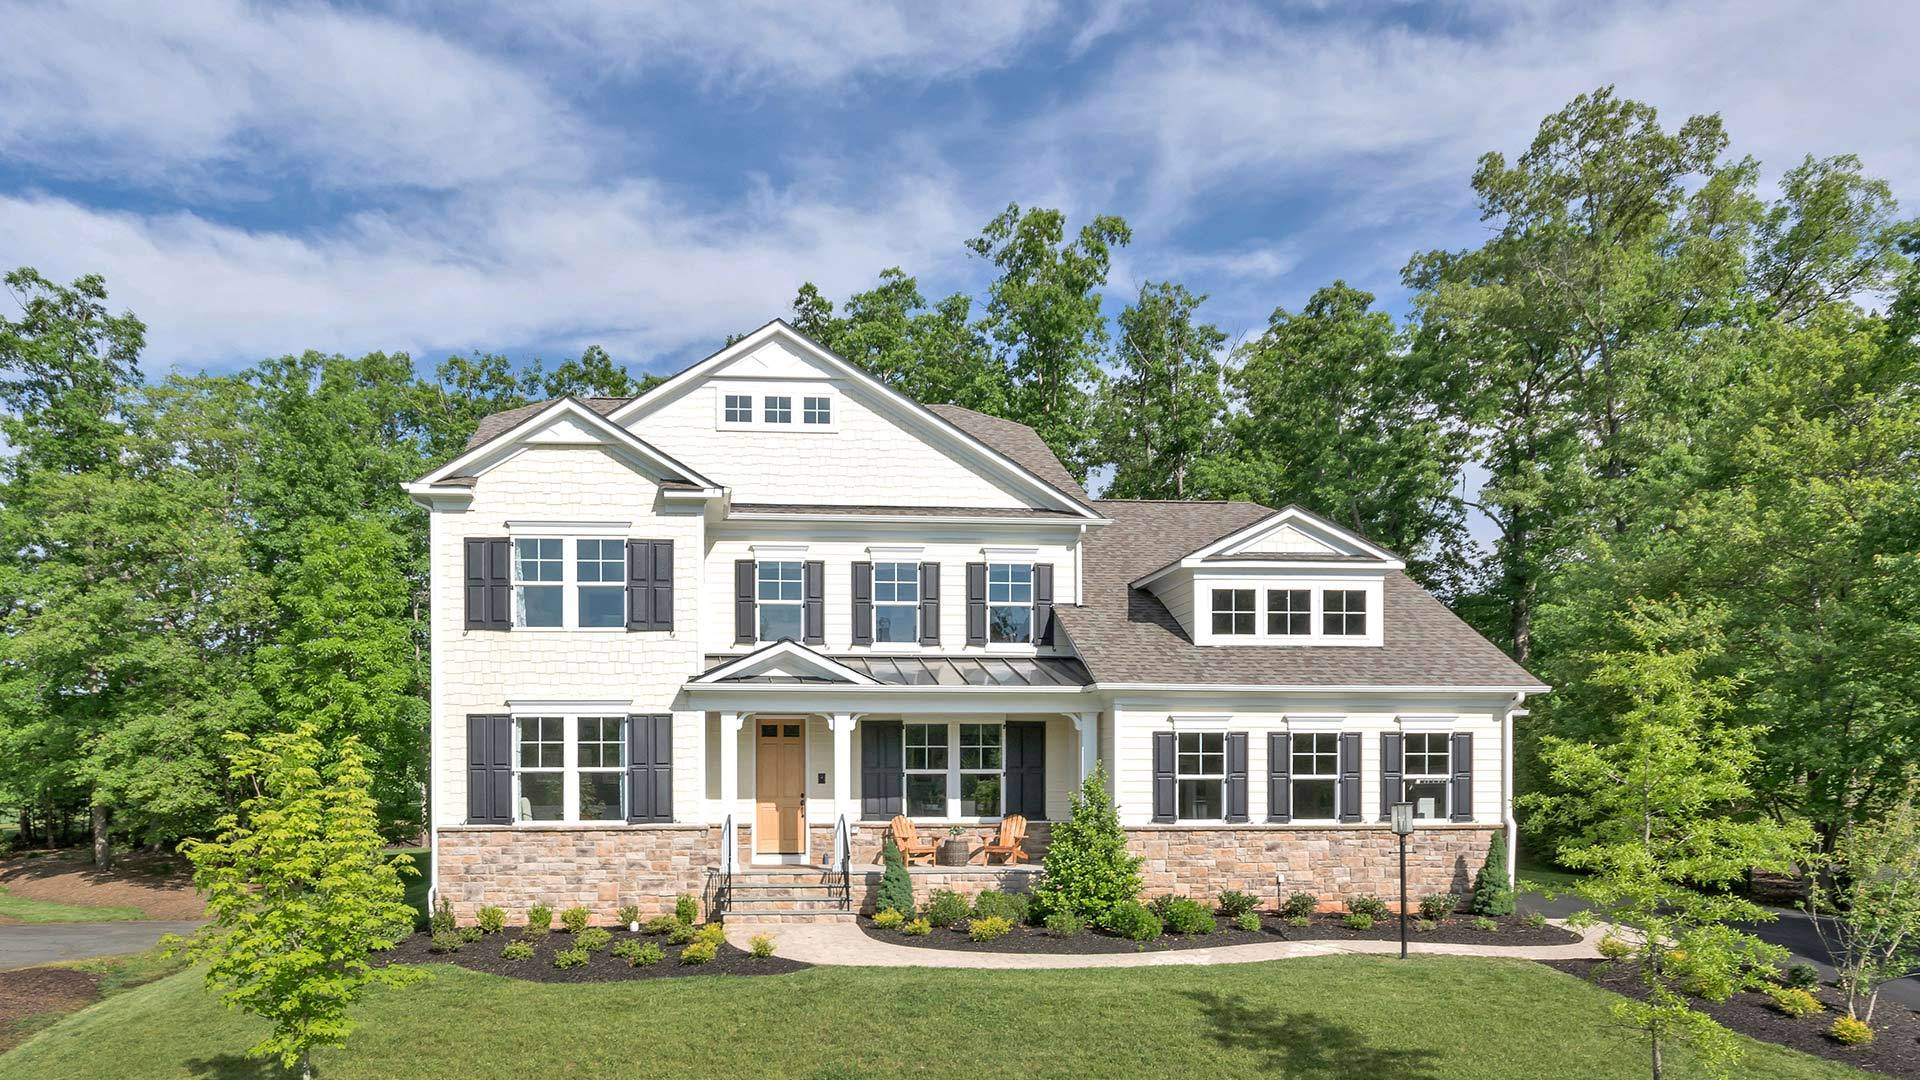 Single Family for Sale at Old Trail - The Morgan Birchwood Hill Road Crozet, Virginia 22932 United States